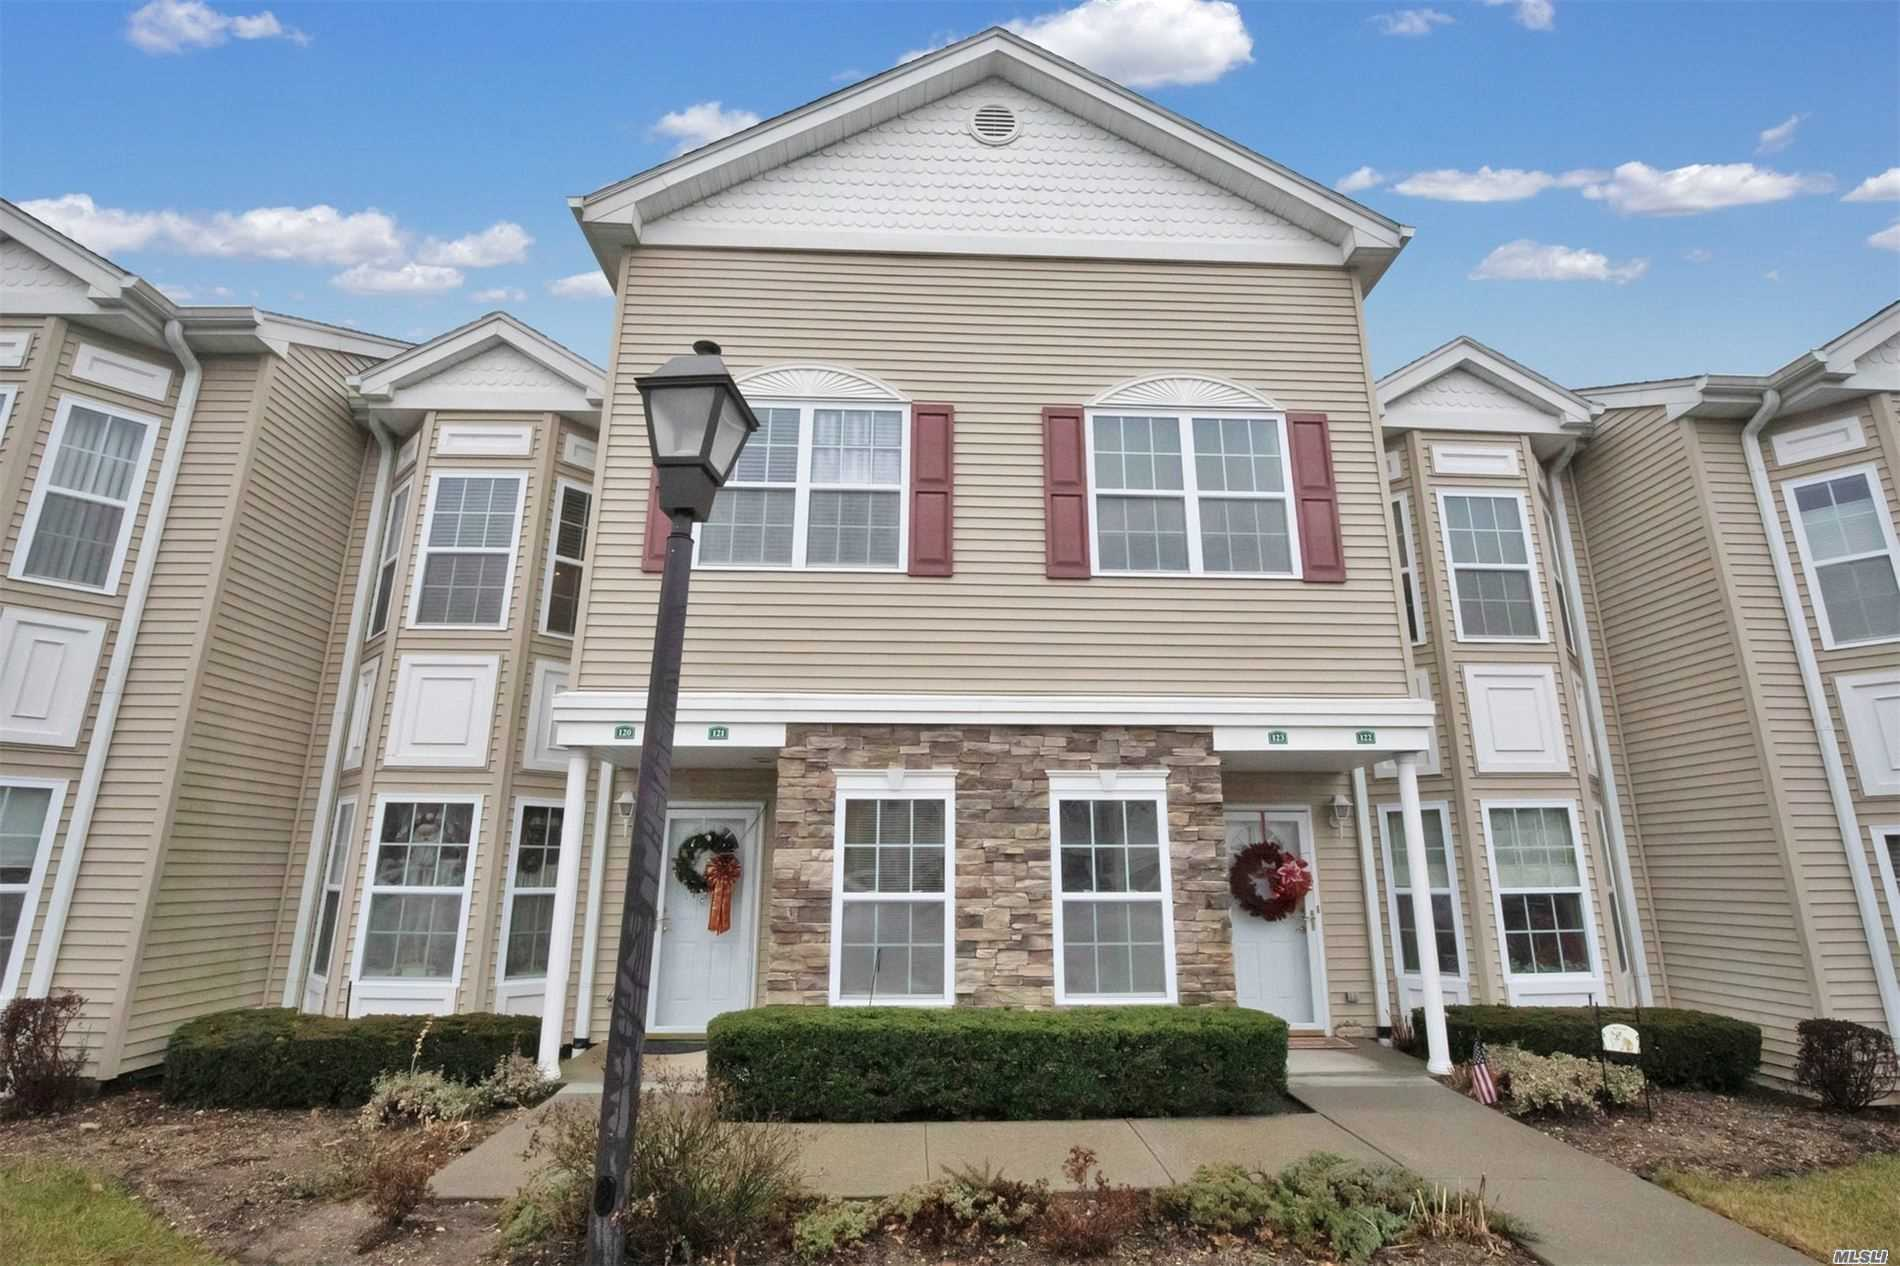 Property for sale at 121 Spring Drive, East Meadow NY 11554, East Meadow,  New York 11554